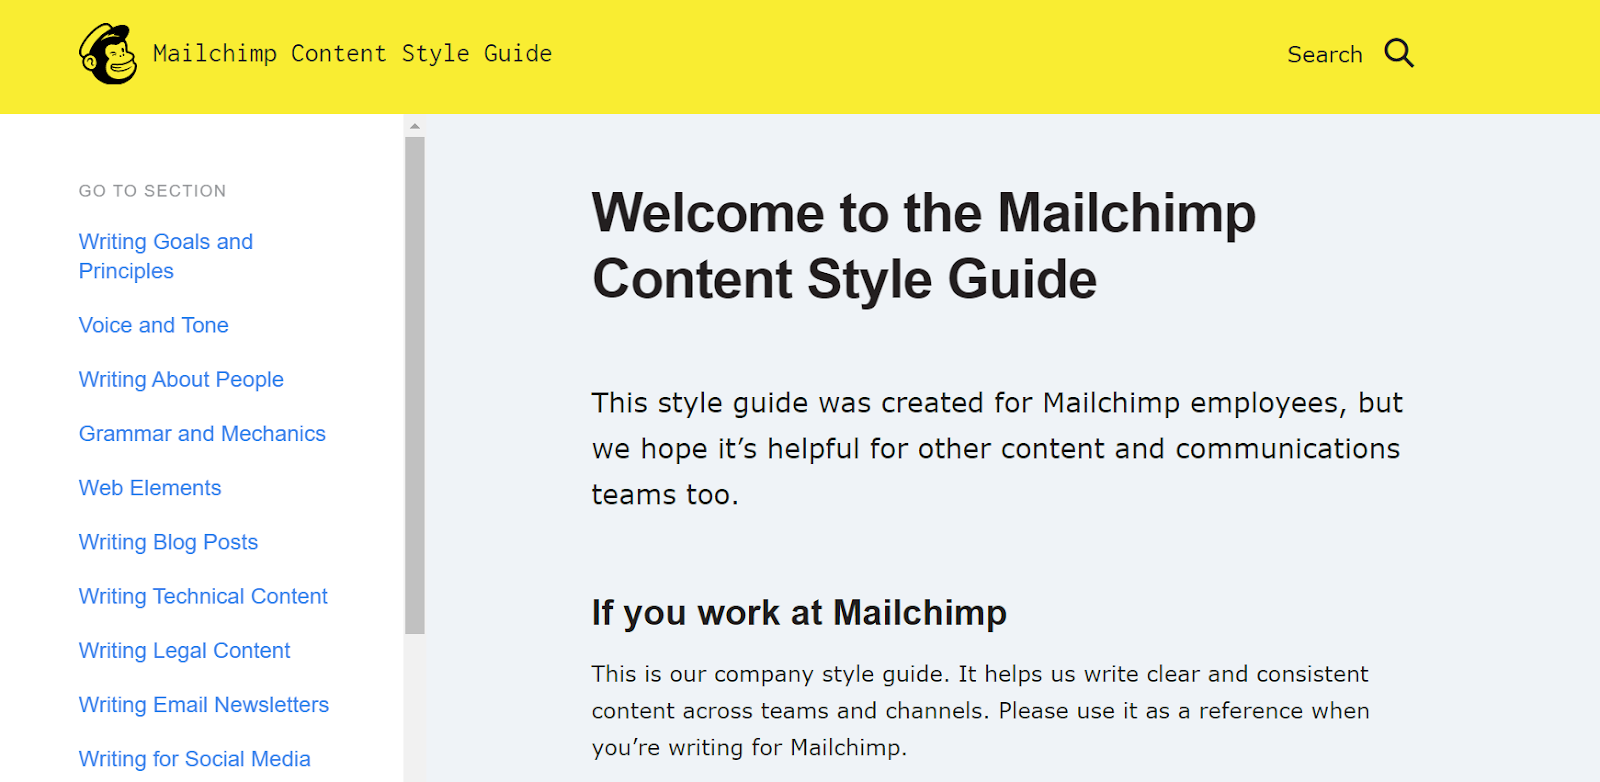 A screenshot of Mailchimp's content style guide.